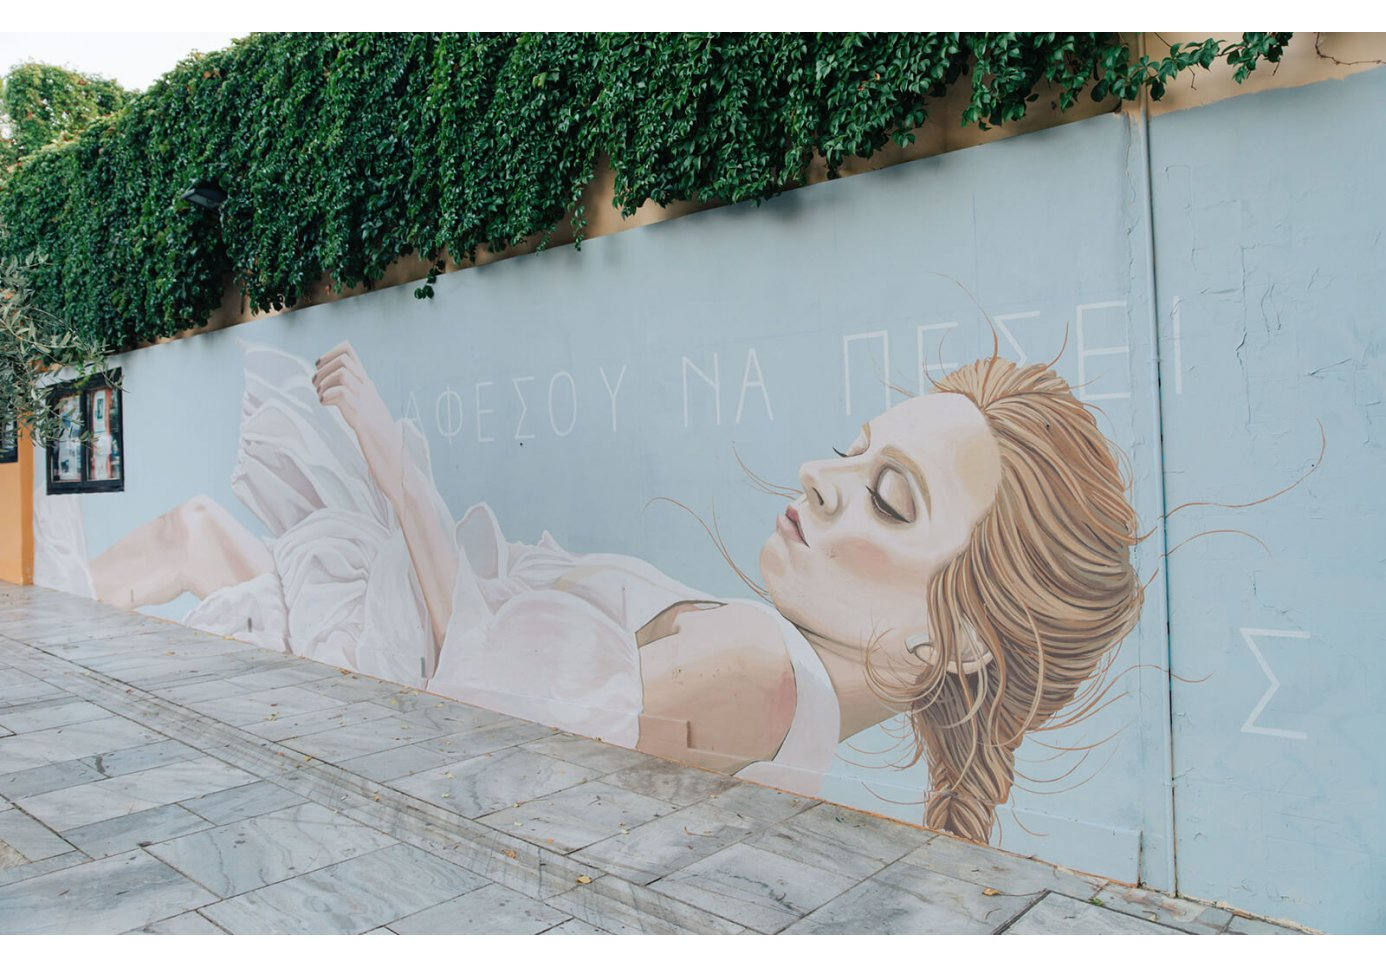 Let Yourself Fall by Duo Amazonas graffiti on the wall of Thiseion cinema in Athens.